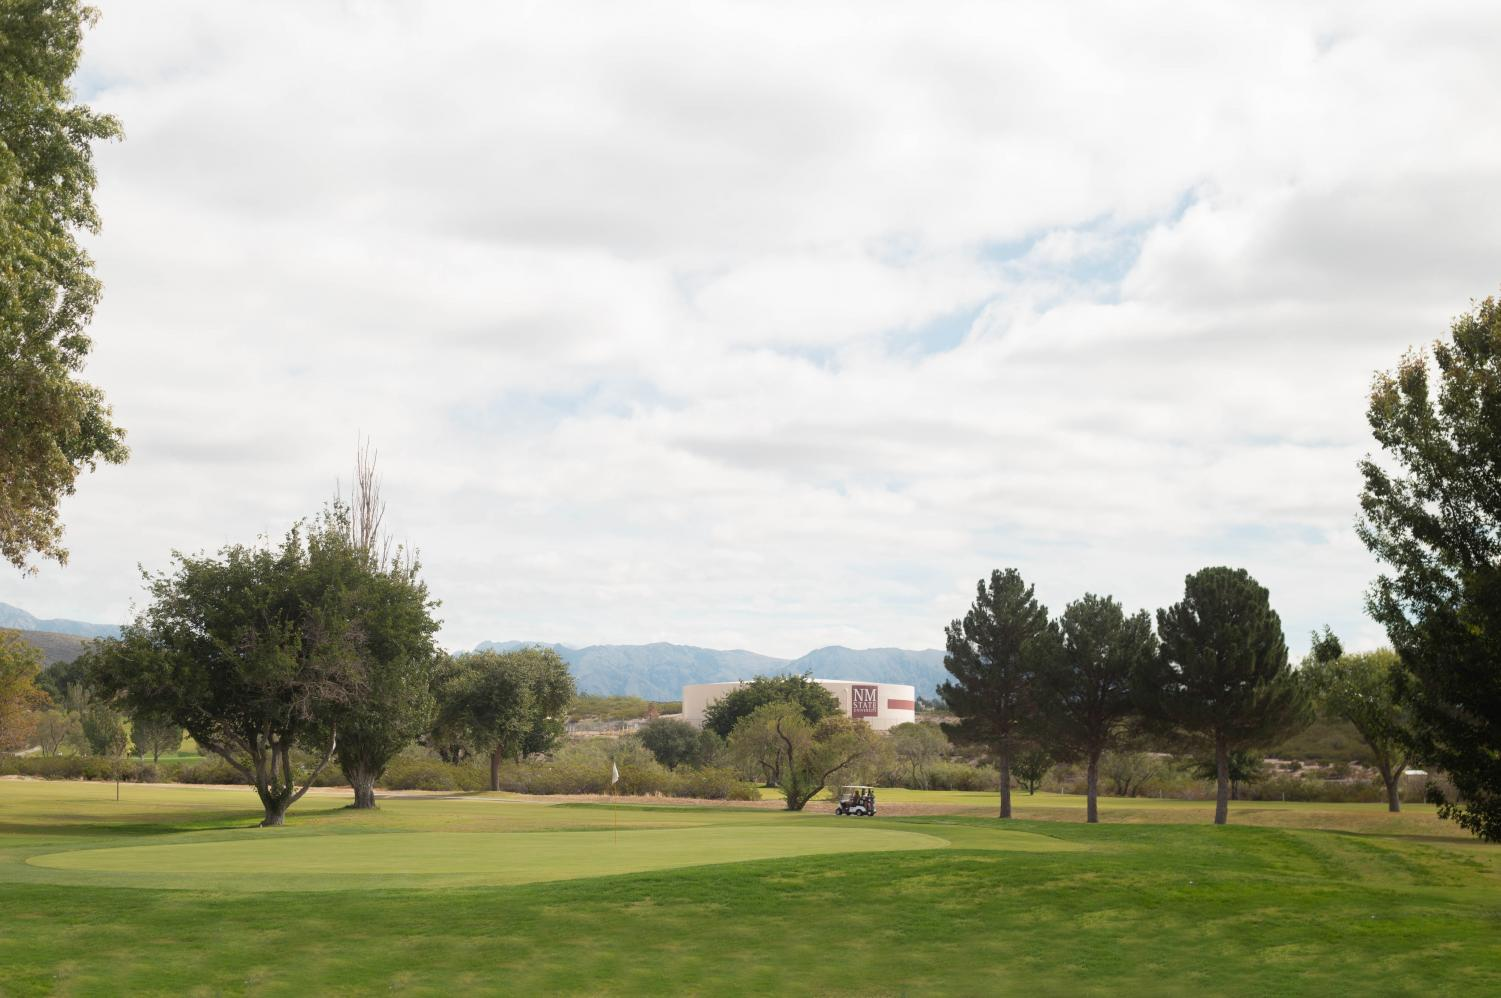 NMSU Golf Course projects their budget to be flat for the 2018-2019 year.